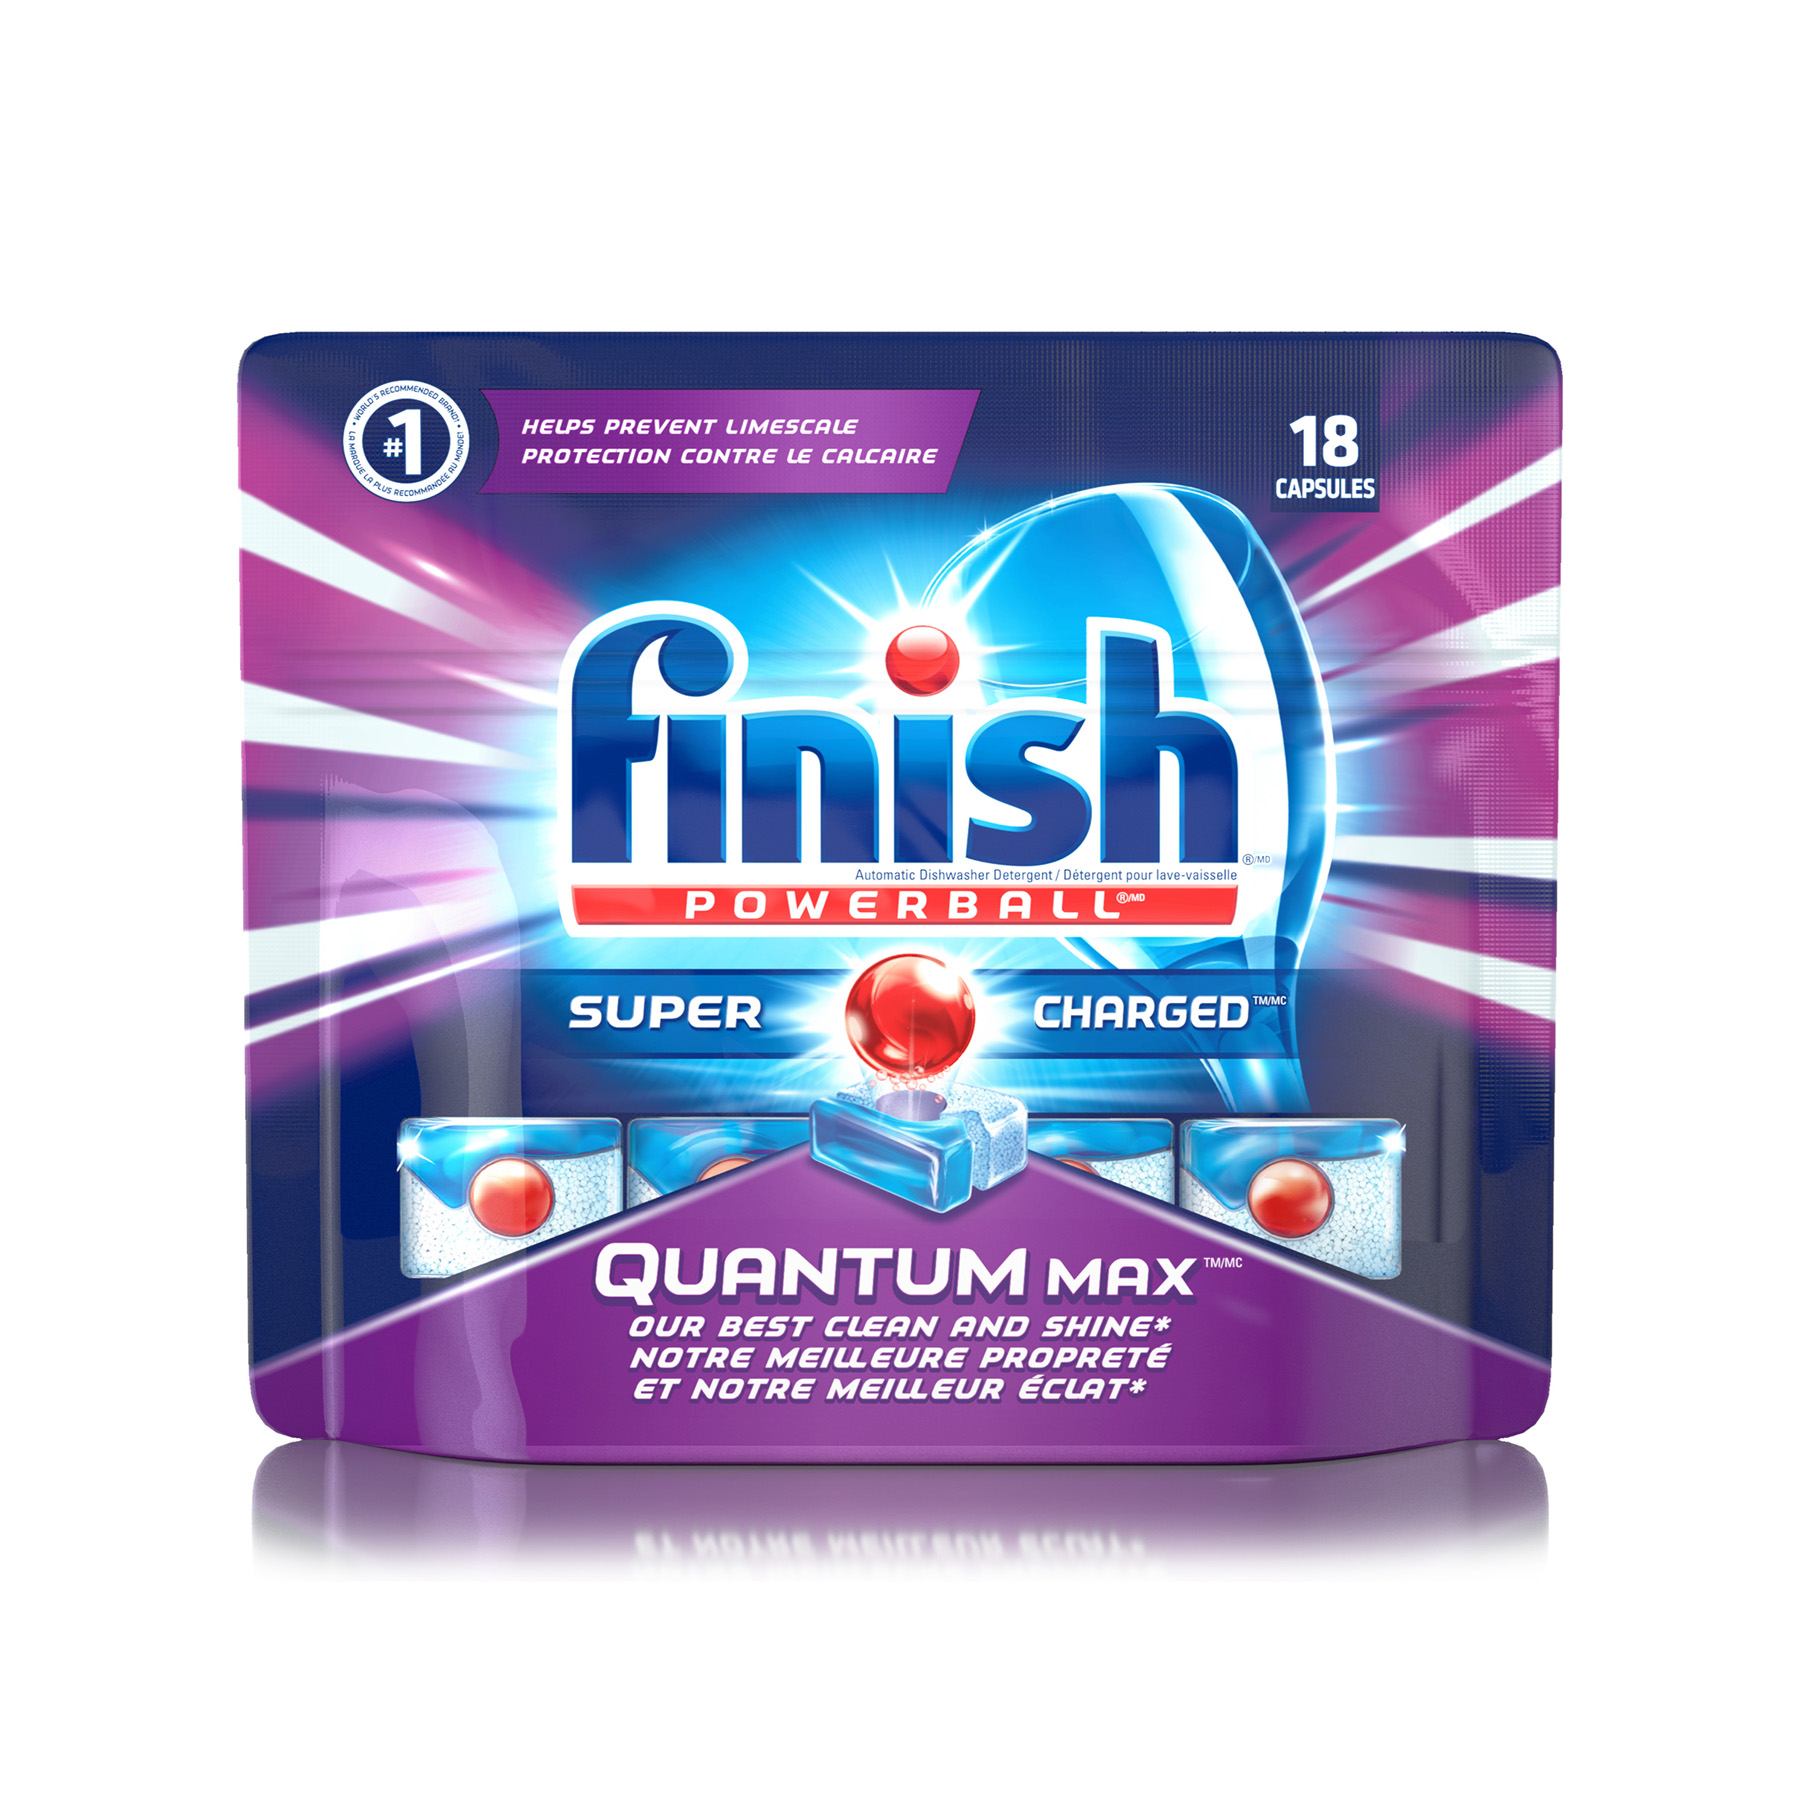 FINISH Powerball Quantum Max Super Charged Capsules Canada Photo